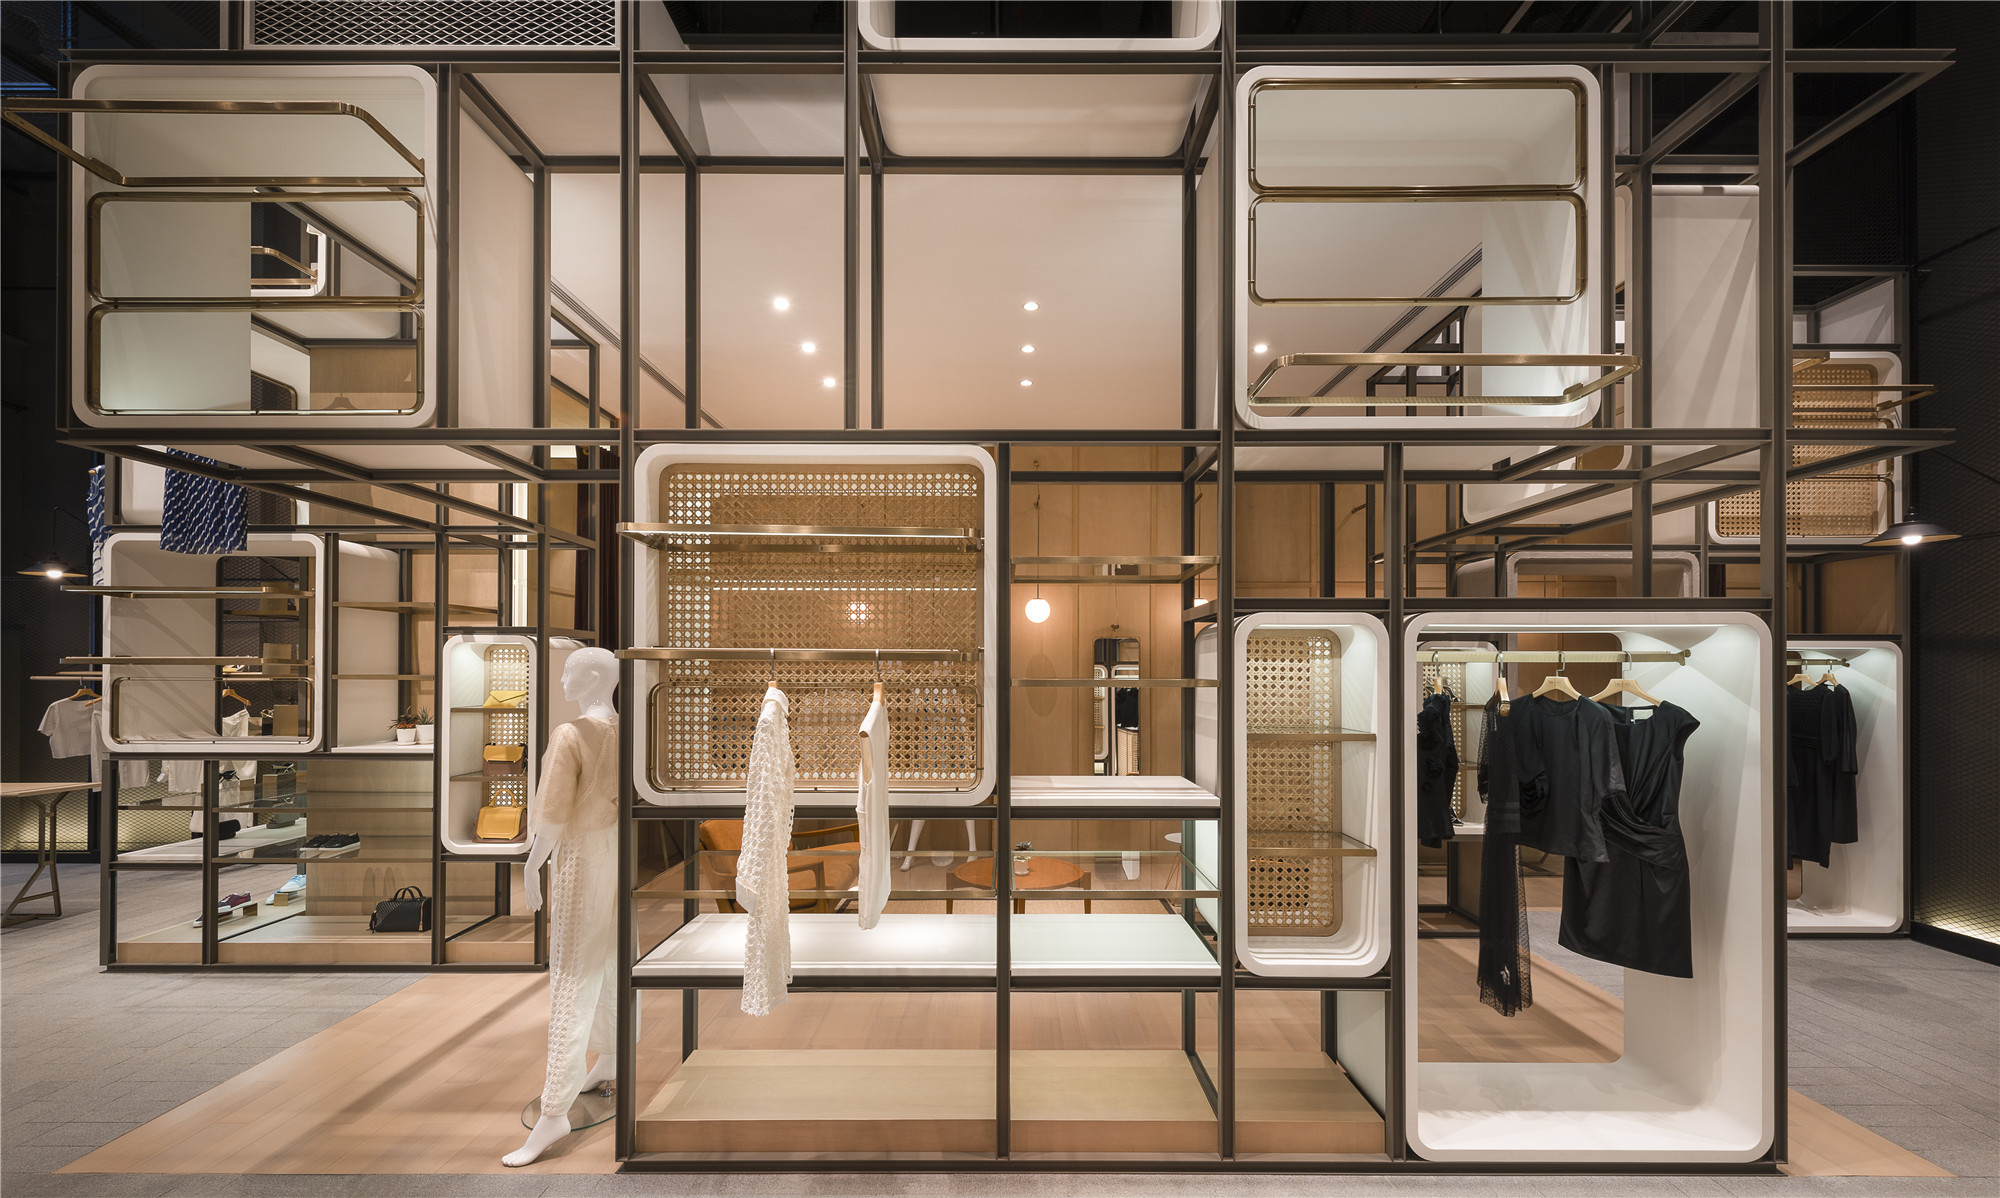 The modular lilong lukstudio archdaily - Interior design for retail stores ...